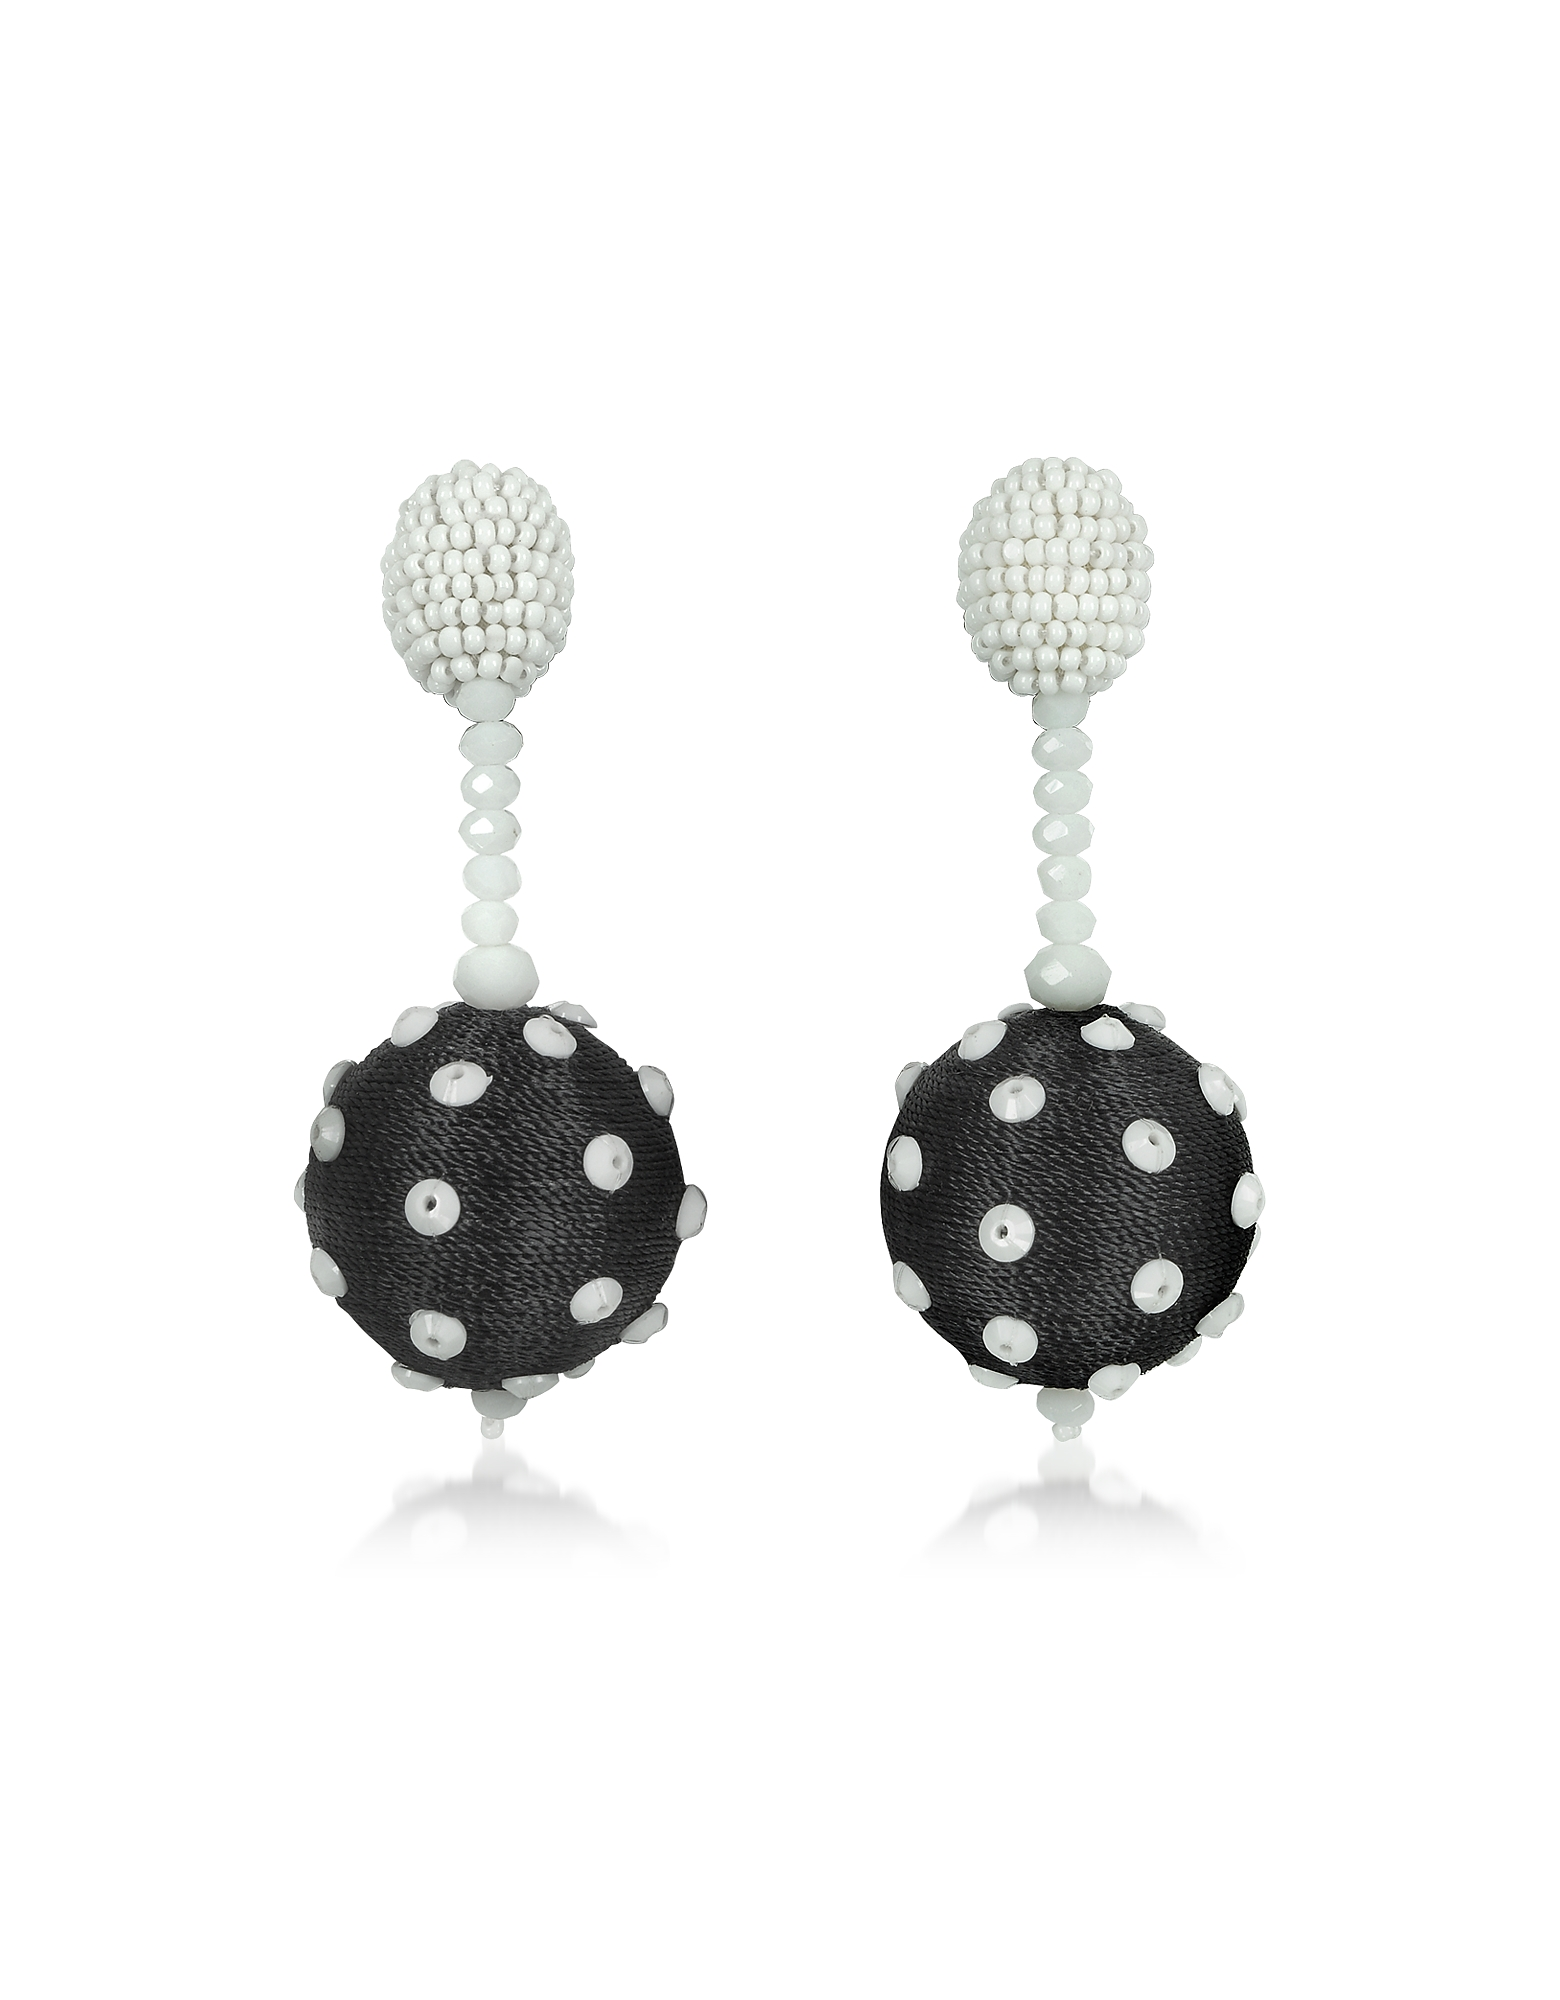 Oscar de la Renta Earrings, Polka Dot Sequin Single Ball Clip-On Earrings